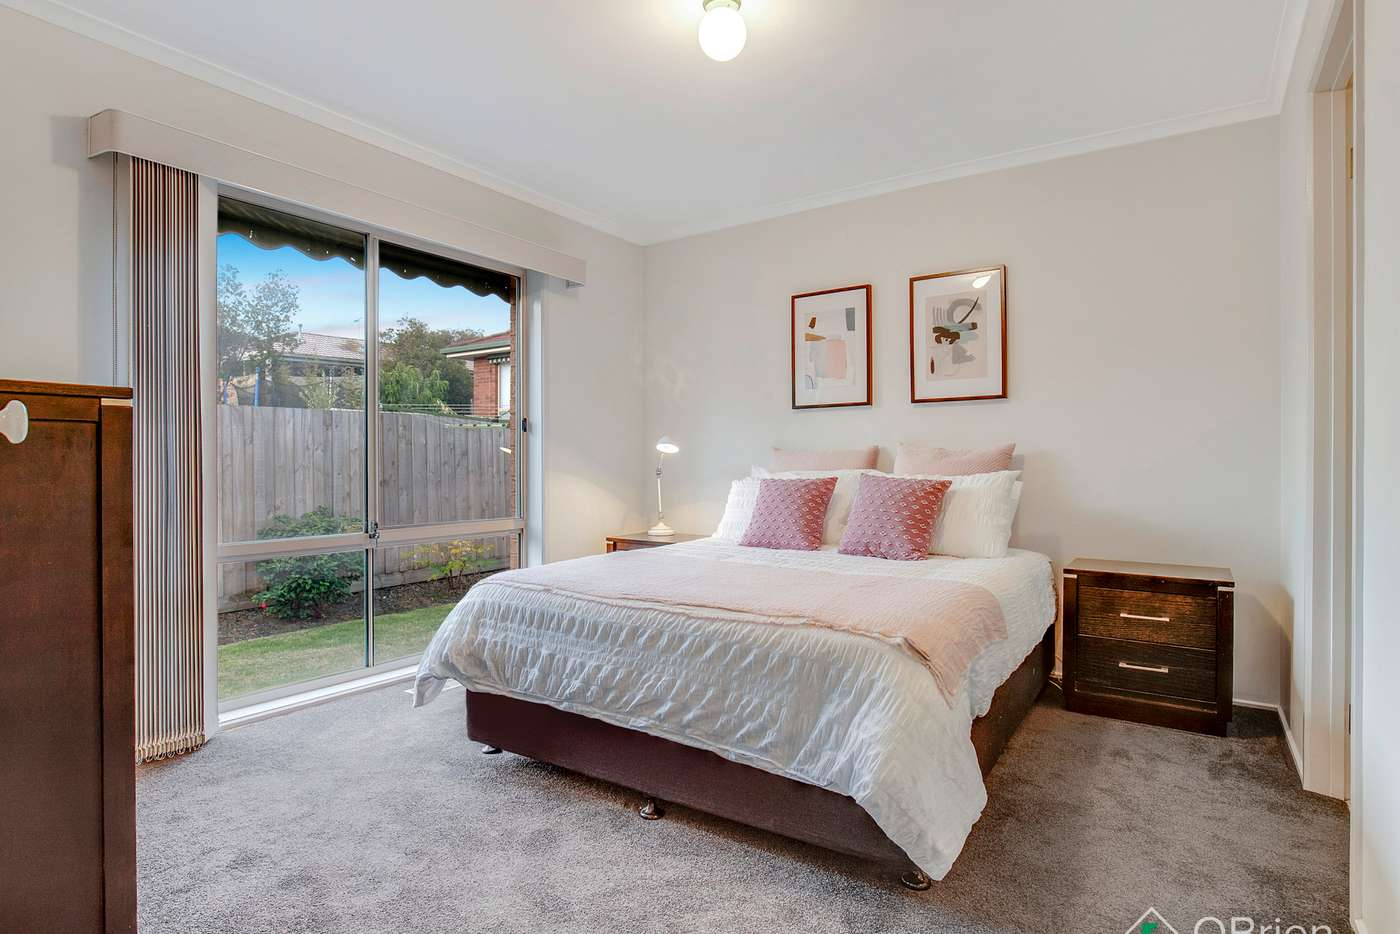 Sixth view of Homely house listing, 3 Tambo Court, Langwarrin VIC 3910